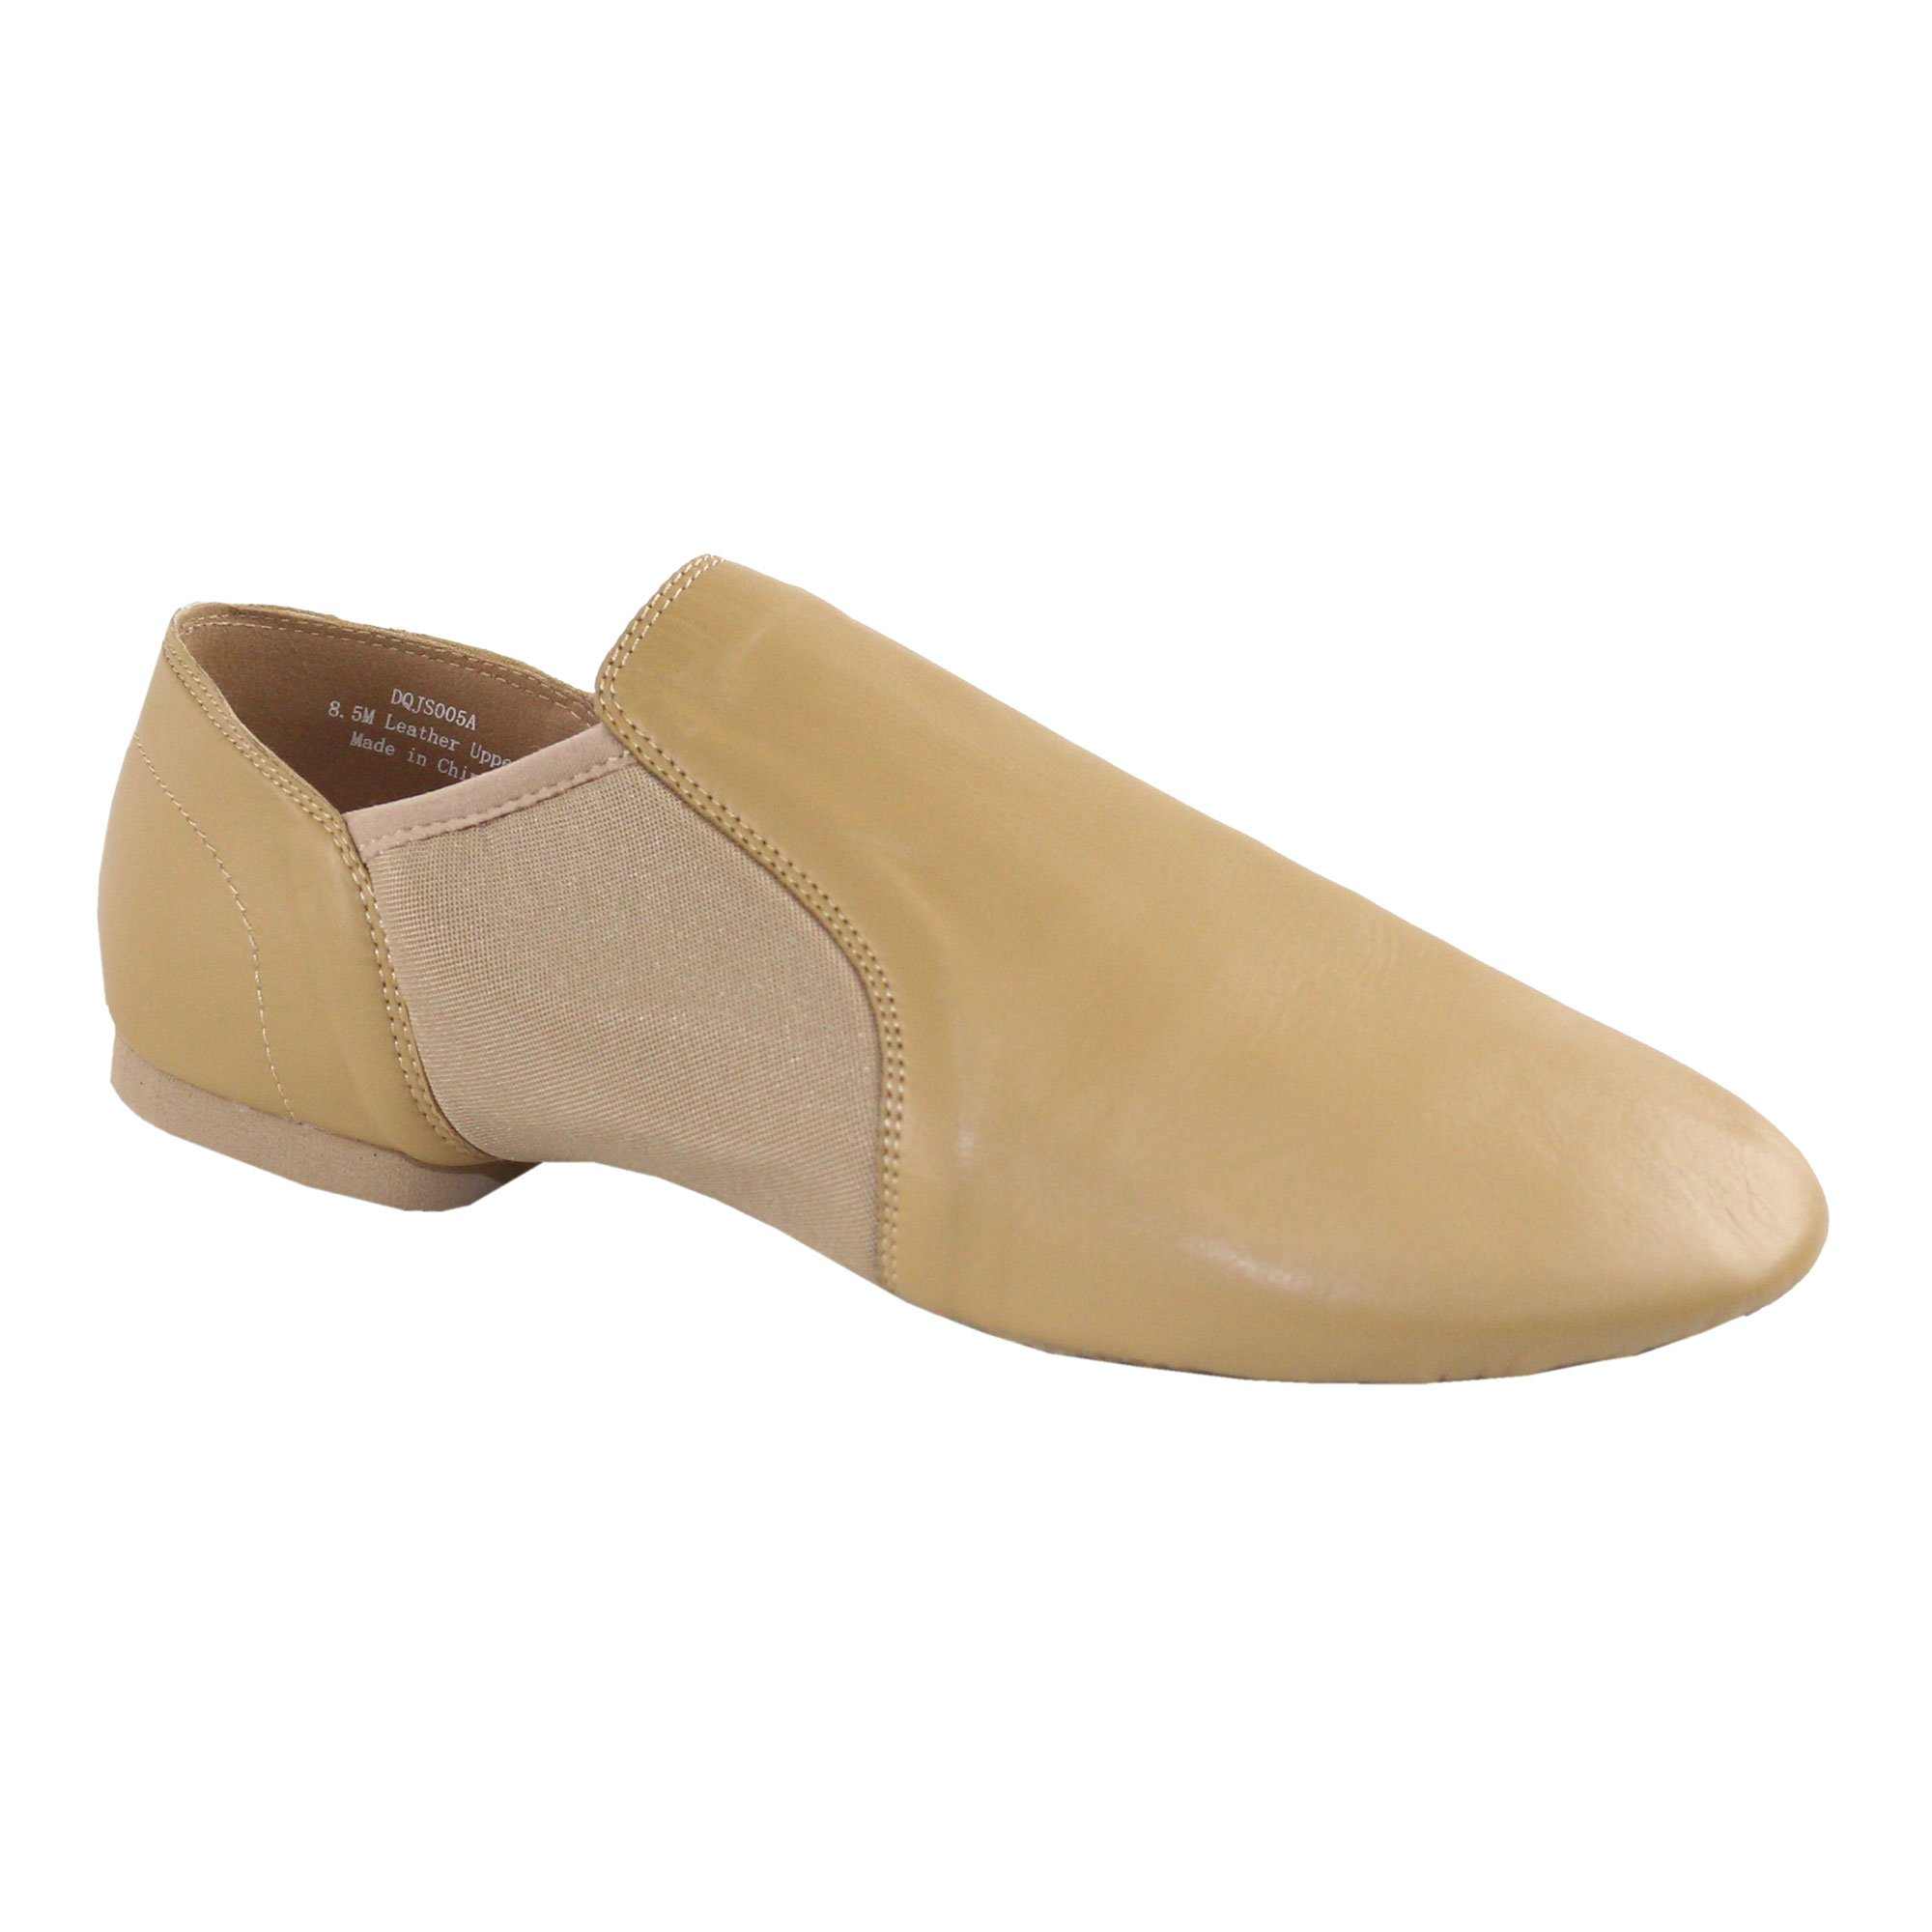 9715843b20b1 Danzcue Adult Leather Upper Slip-On Jazz Dance Shoes